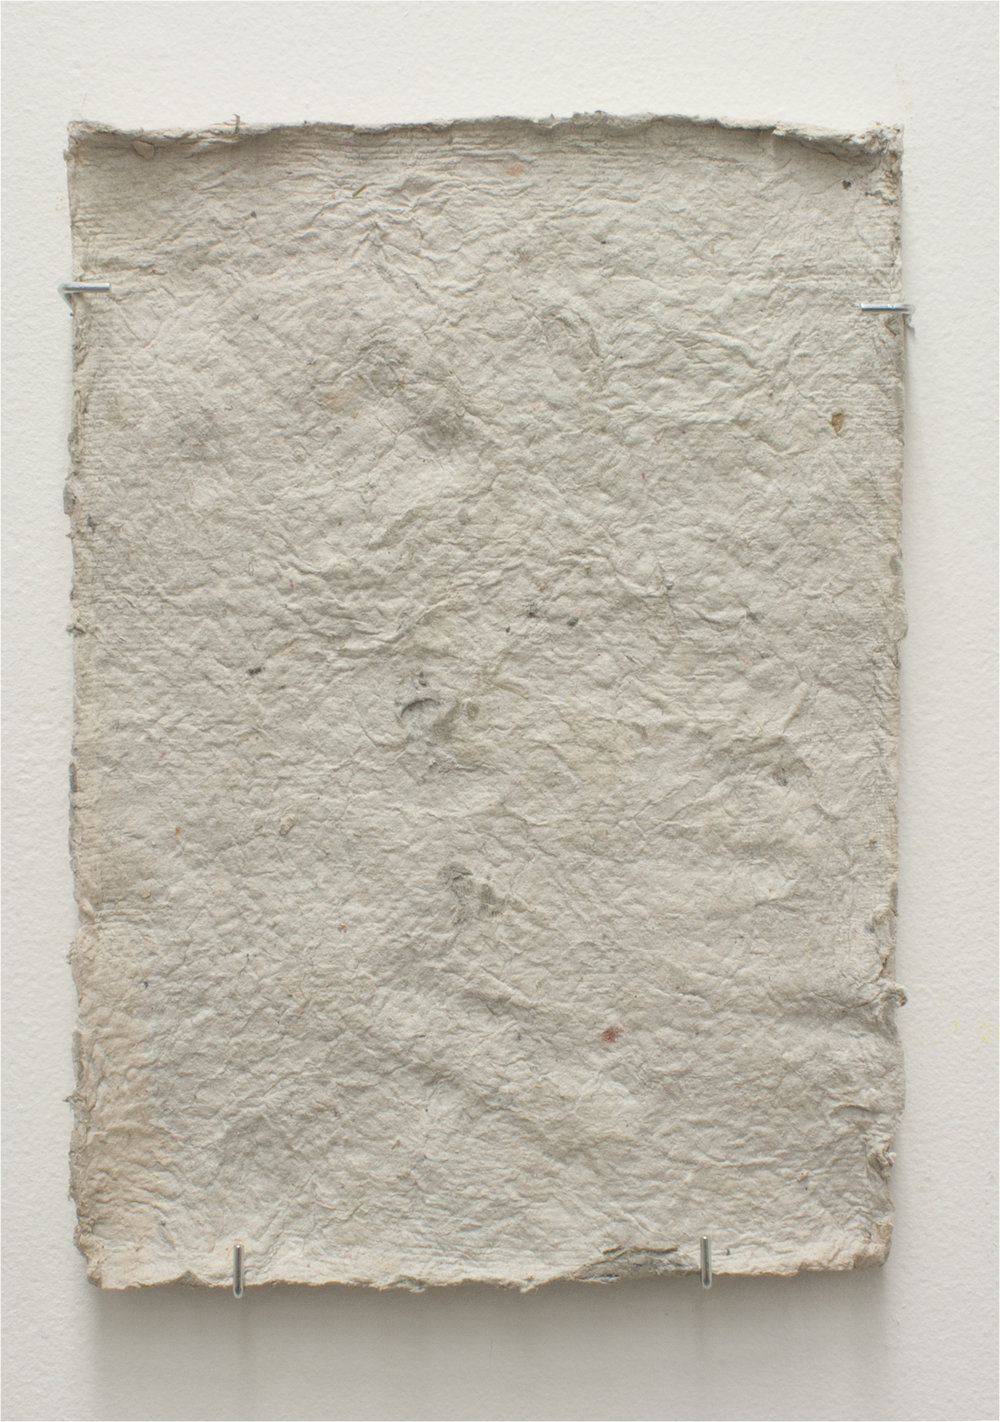 "unfurled    Plaster, Detritus Paper, Leaves, and Unfired Clay   48"" x 11"" x 1""  2016"